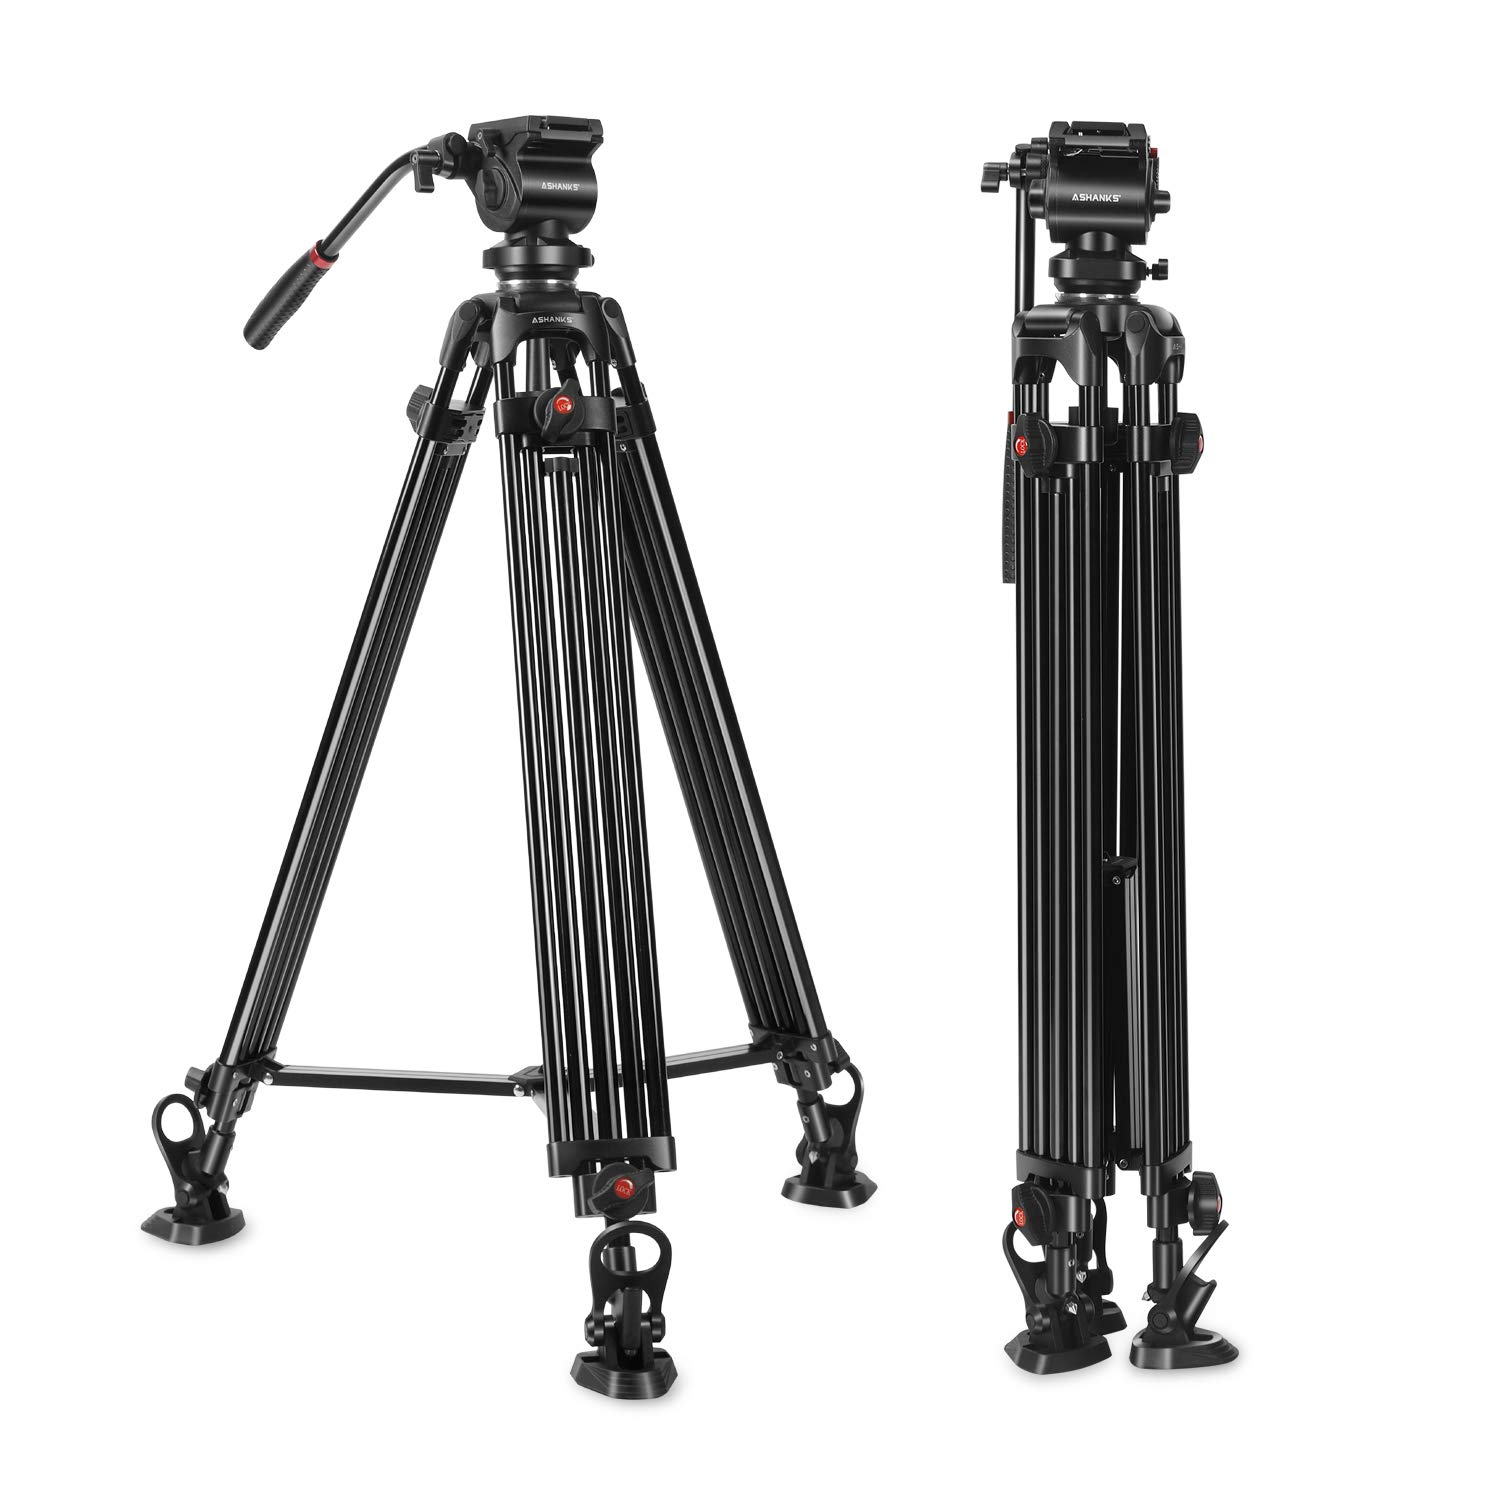 ASHANKS Professional Video Tripod,ASHANKS 74inch Fluid Head Tripod for Heavy Camera Camcorder,Quick Release Plate,Horseshoe Rubber Feet, Max Loading 15.4Lb with Carrying Bag